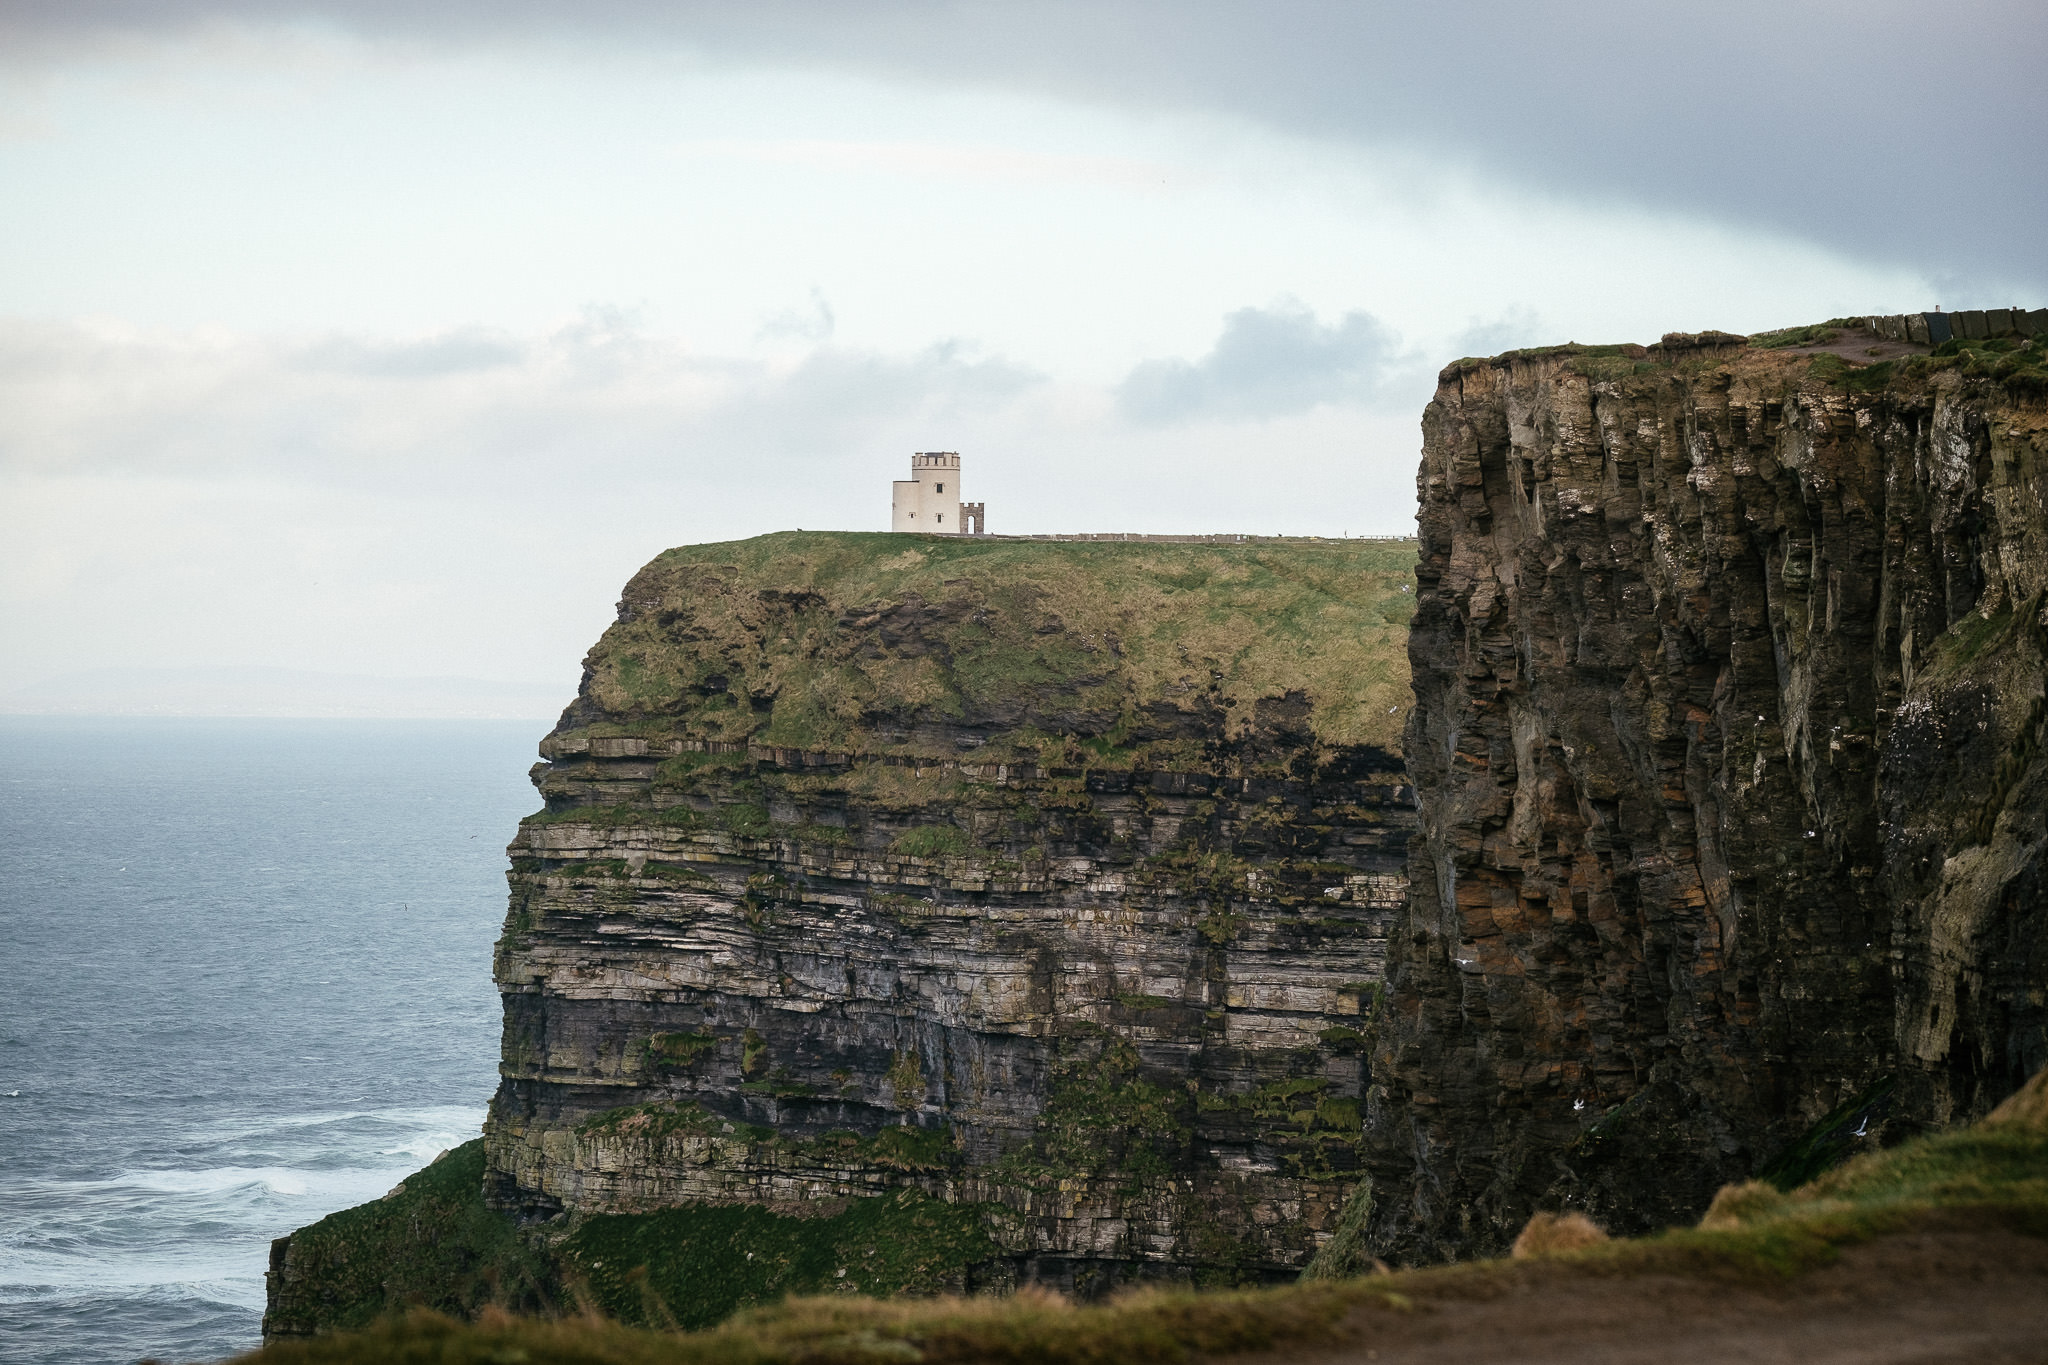 O'Briens tower at the Cliffs of Moher Ireland